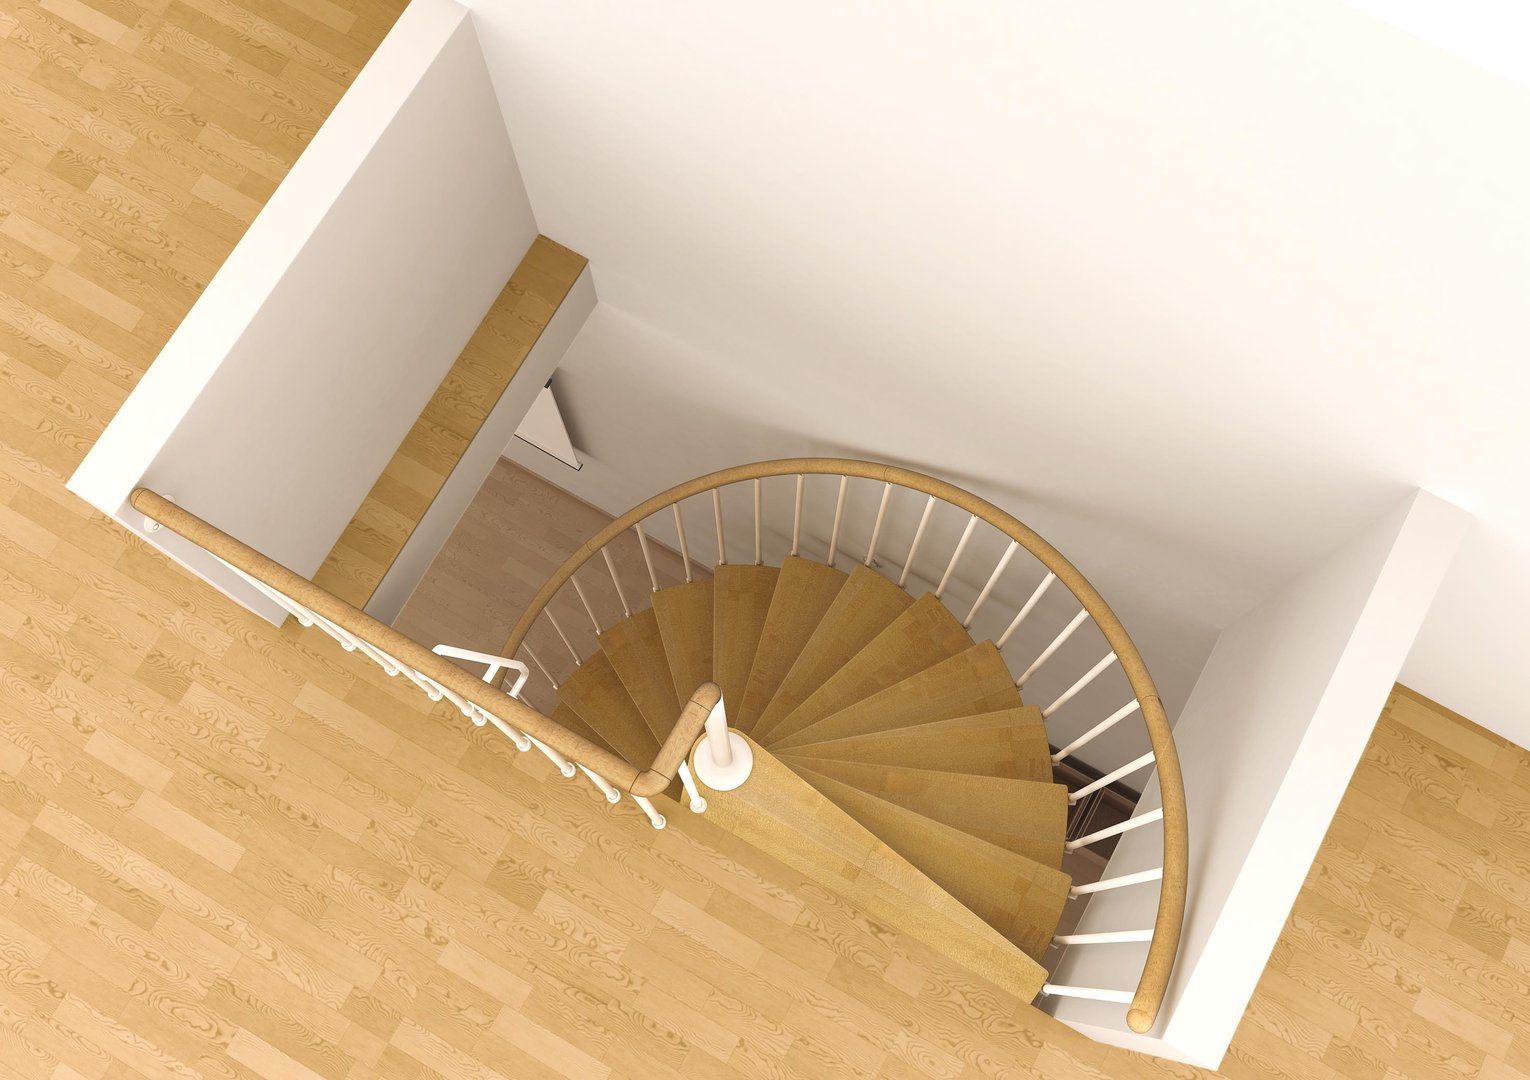 Space saving spiral staircase type toscana l00l stairs for Spiral stair design